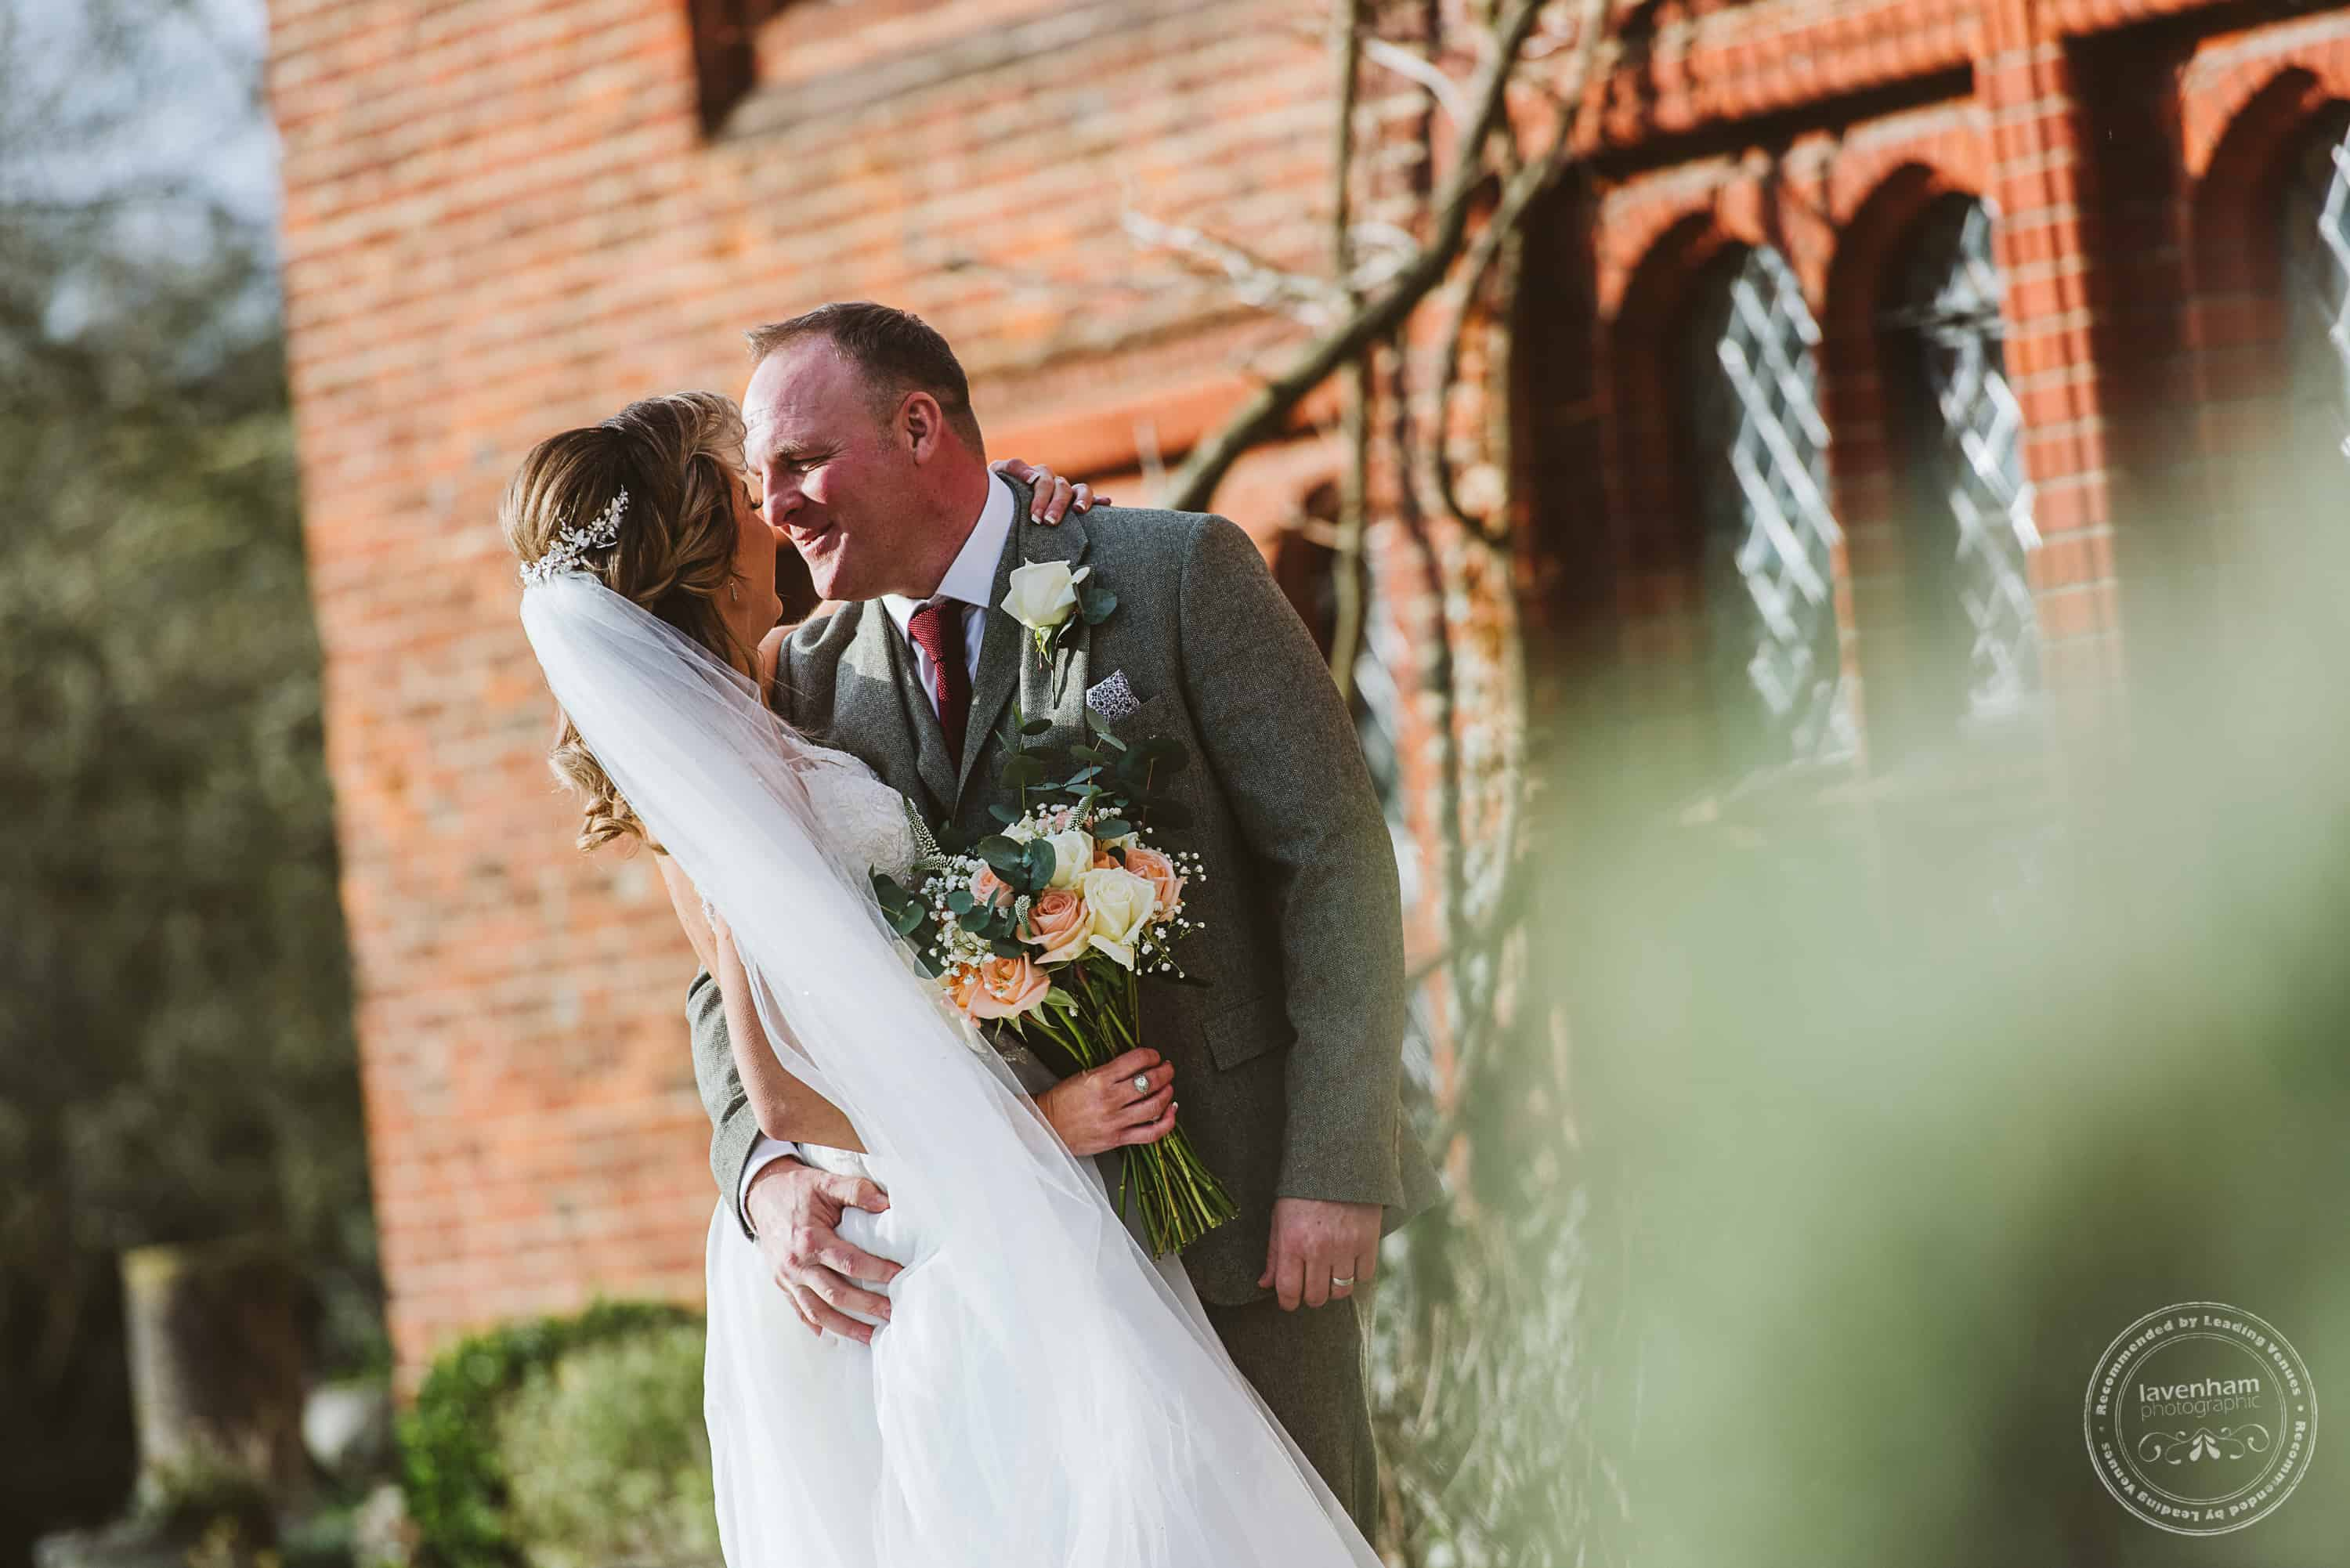 010220 Leez Priory Wedding Photographer 071